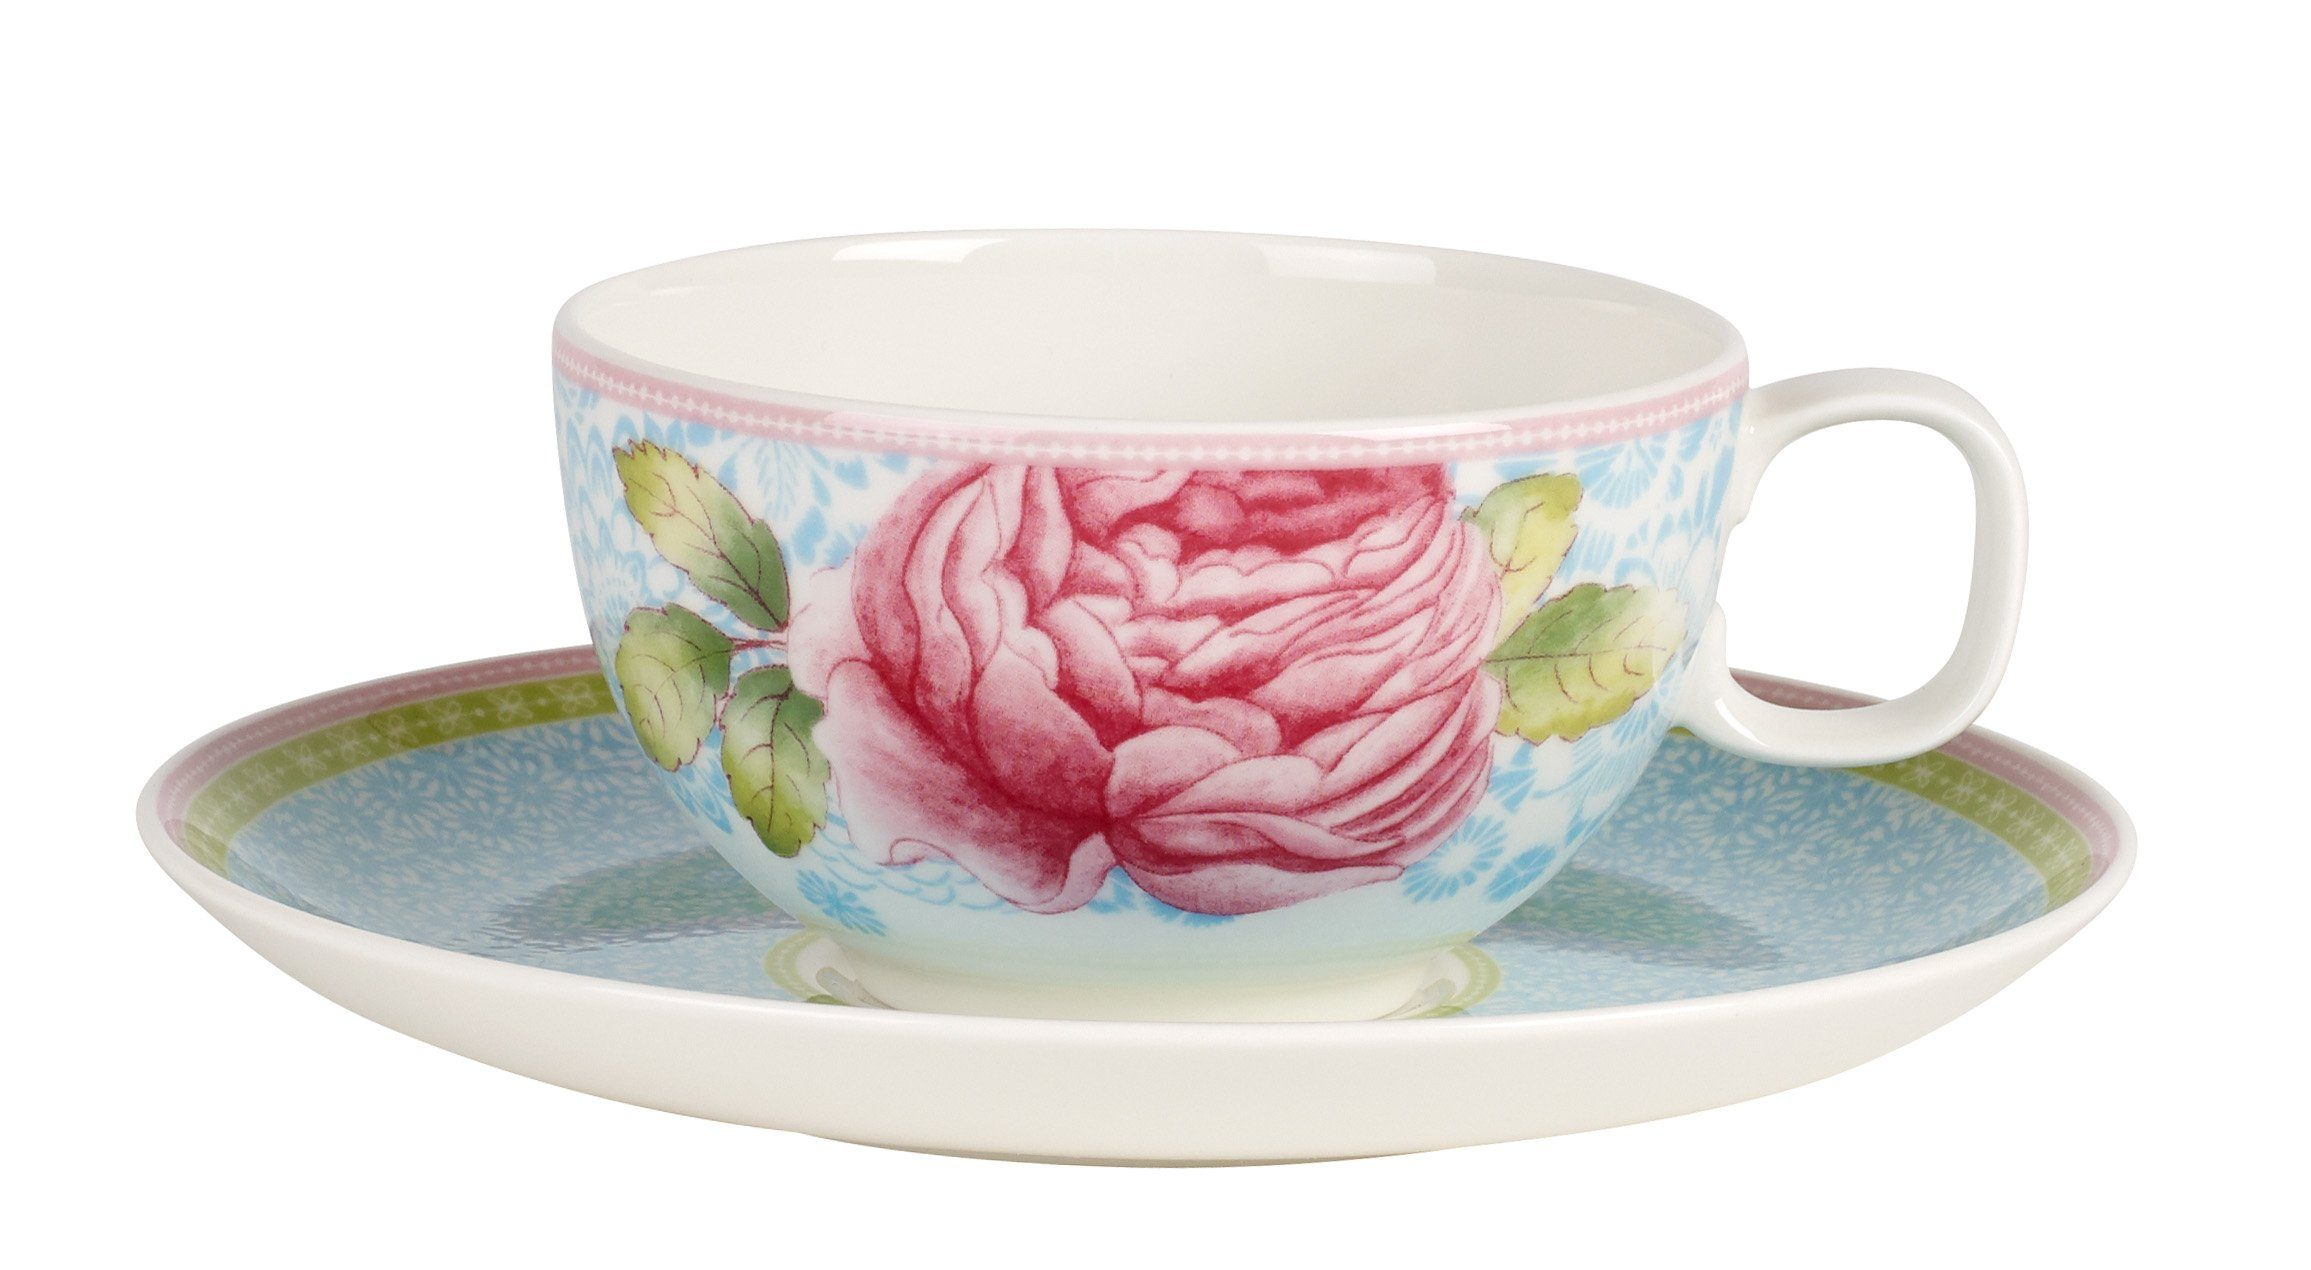 Villeroy & Boch Tee-Set Blau 2-teilig »Rose Cottage«